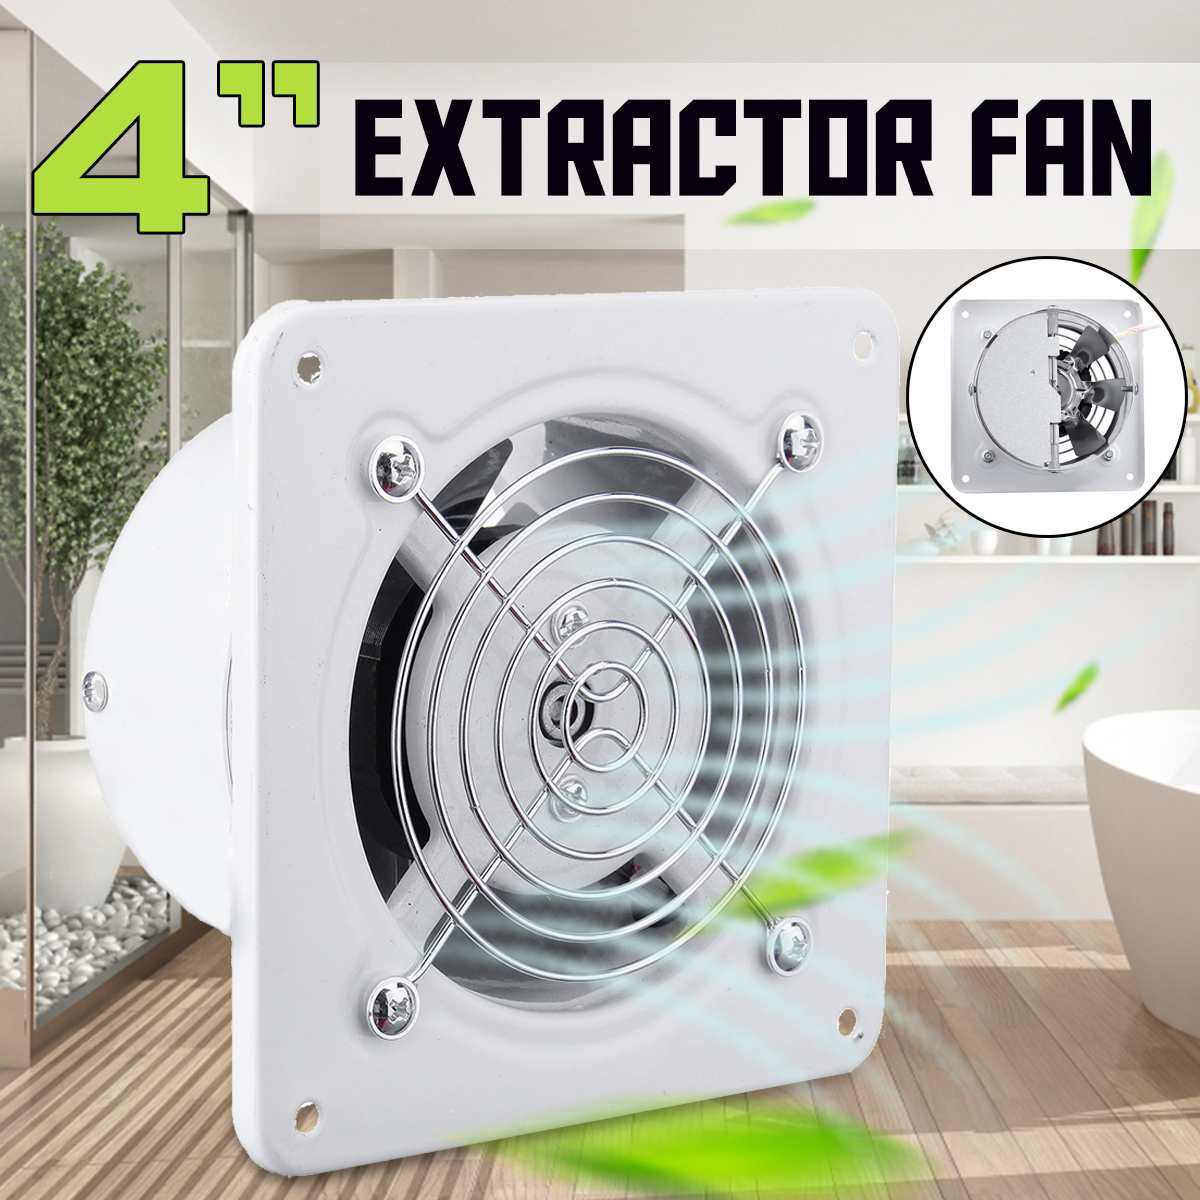 25W 4 220V Home Bathroom Kitchen Toilet Low Noise Ventilator Air Vents Exhaust Fan Wall Window Extractor Ventilation Fan25W 4 220V Home Bathroom Kitchen Toilet Low Noise Ventilator Air Vents Exhaust Fan Wall Window Extractor Ventilation Fan